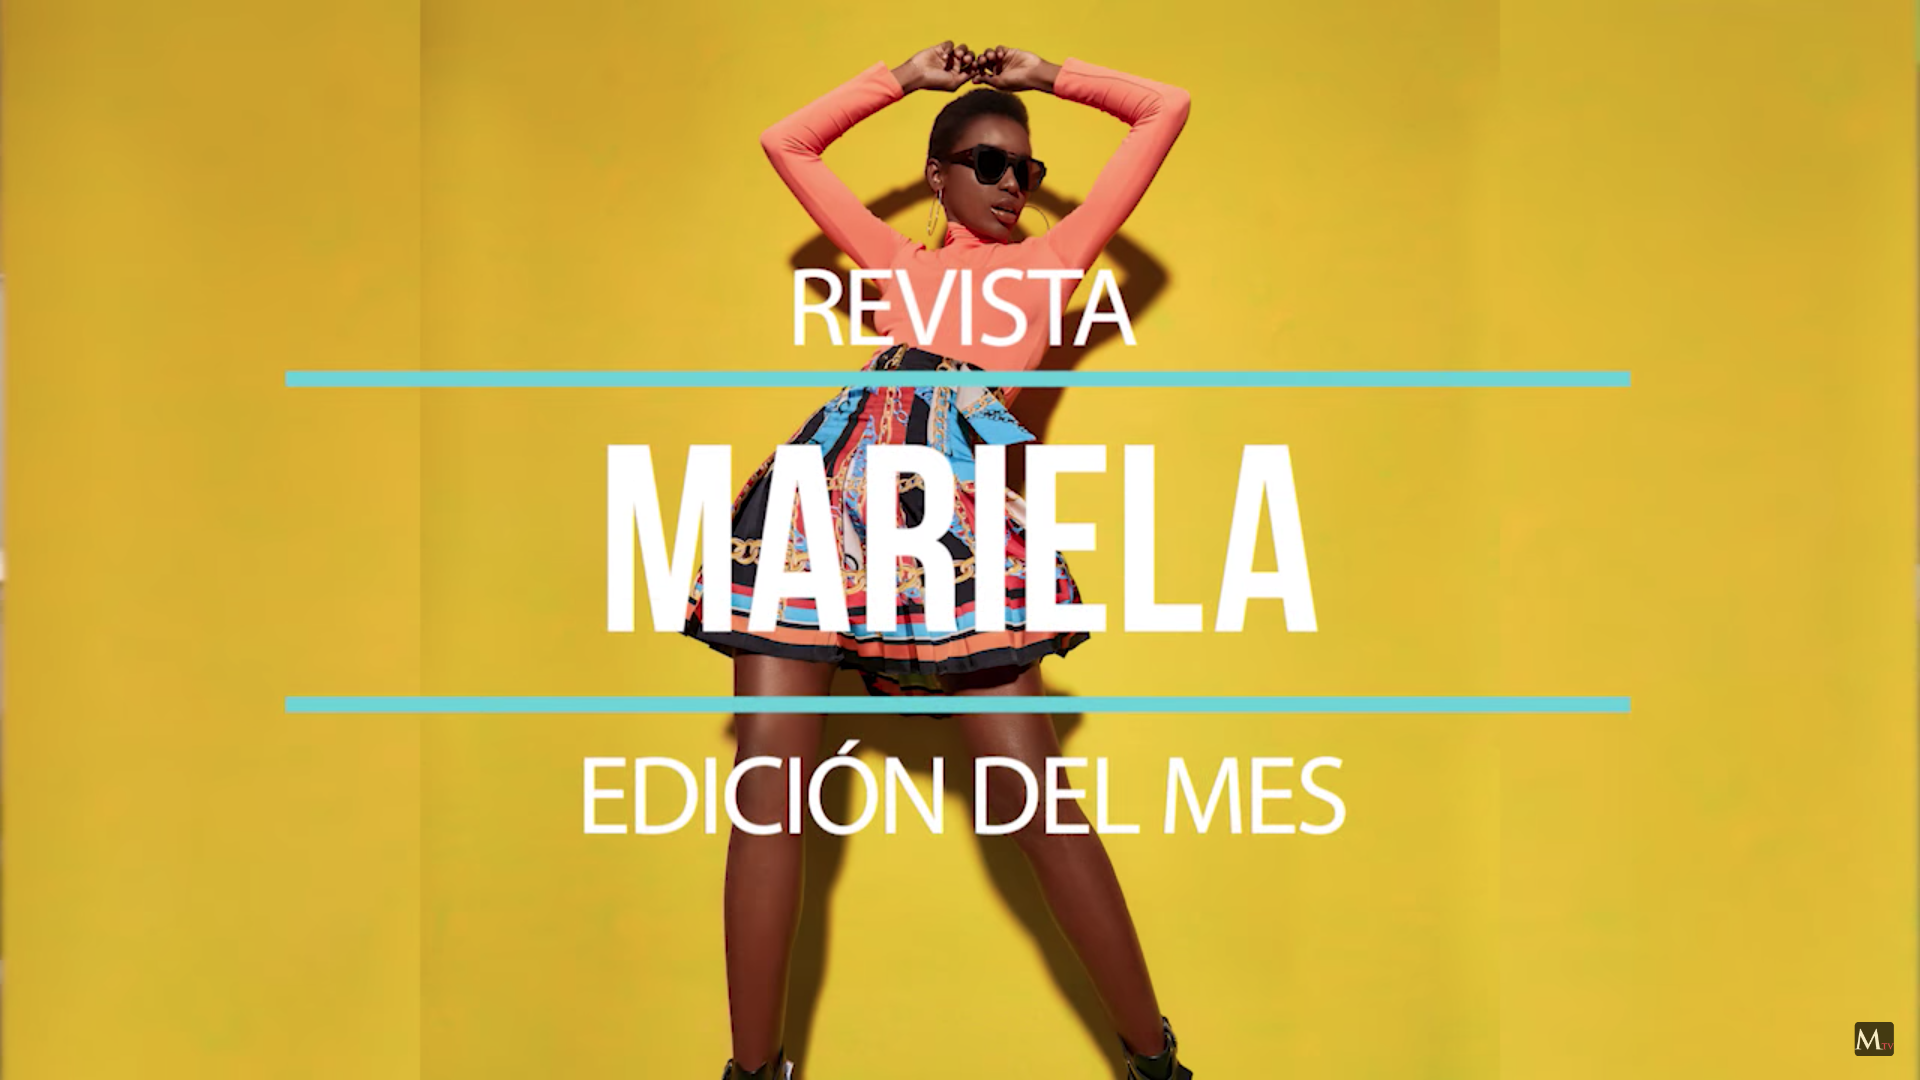 Revista Mariela 121 – Editorial de moda: THE BIG JUMP